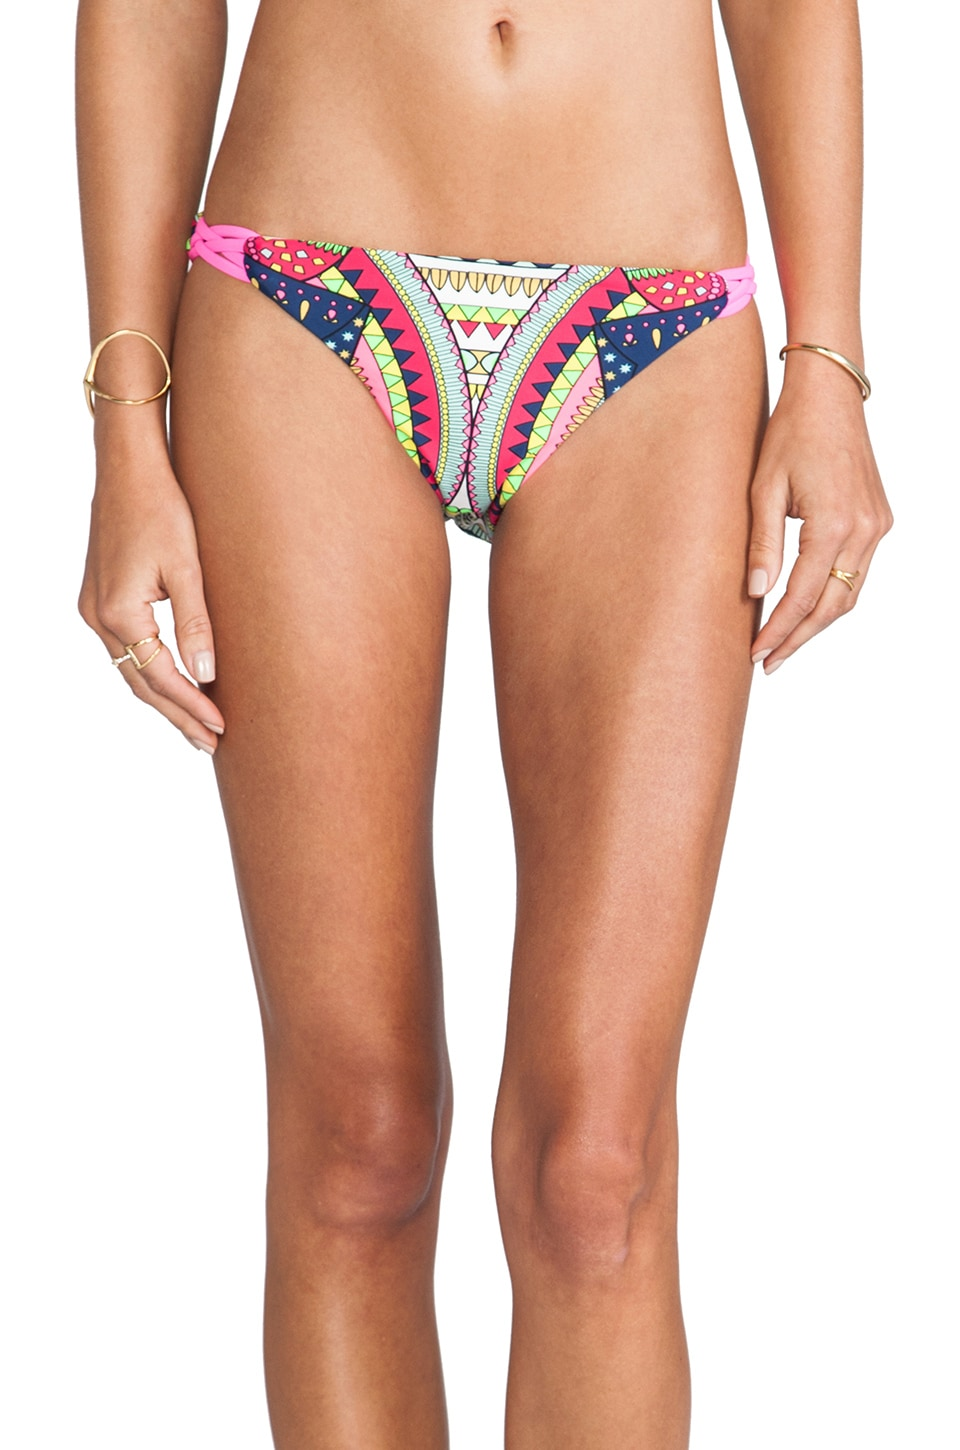 Mara Hoffman Basket Weave Bottom in Ganesh White